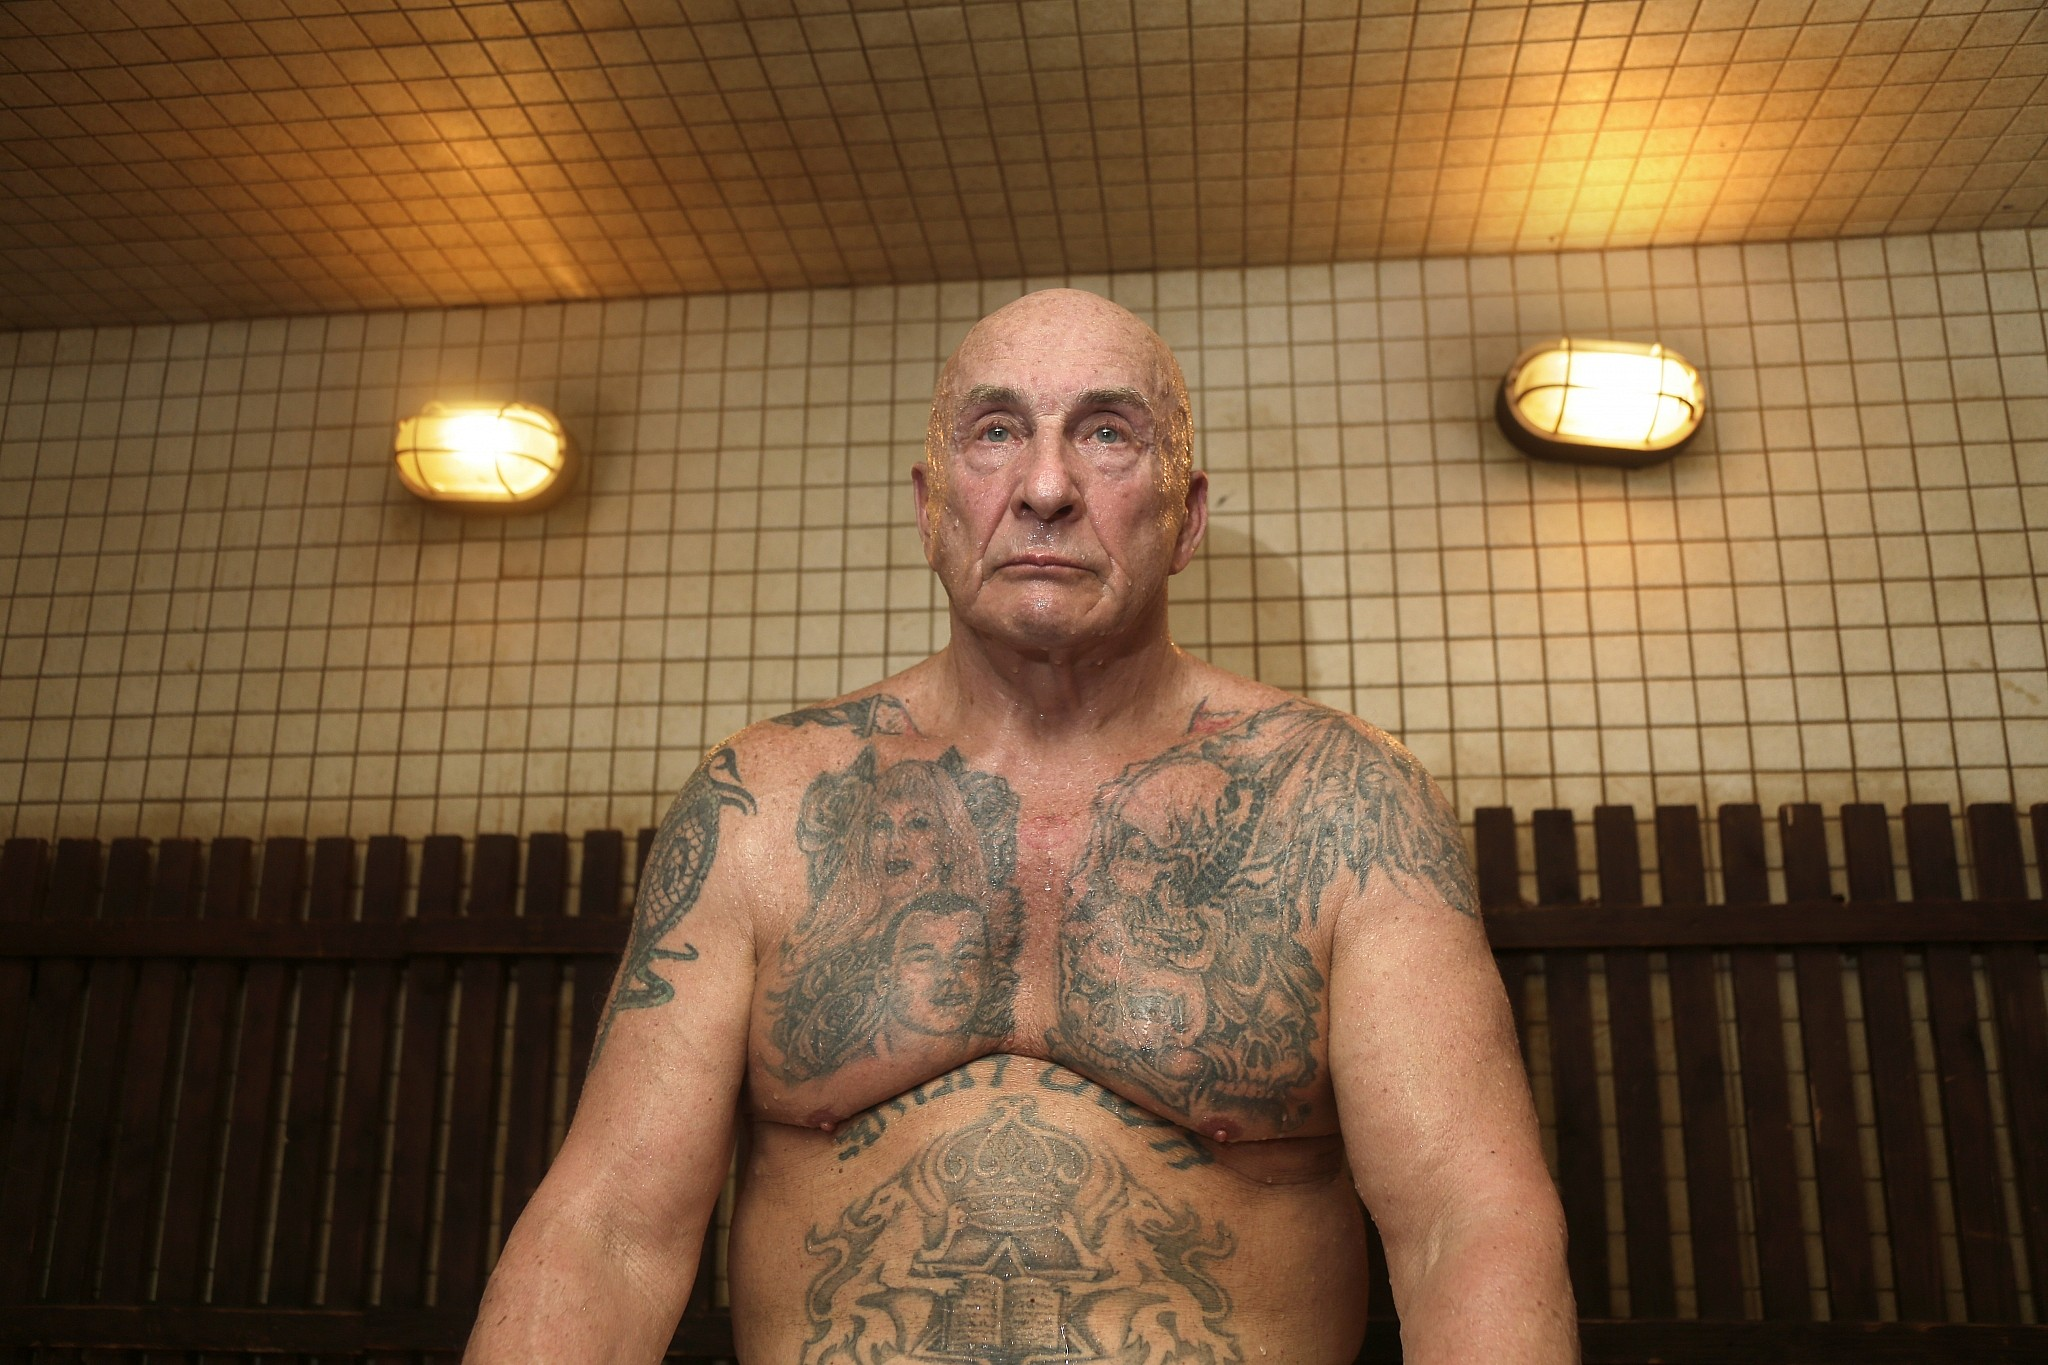 Out of prison, notorious Russian mobster yearns to return home | The